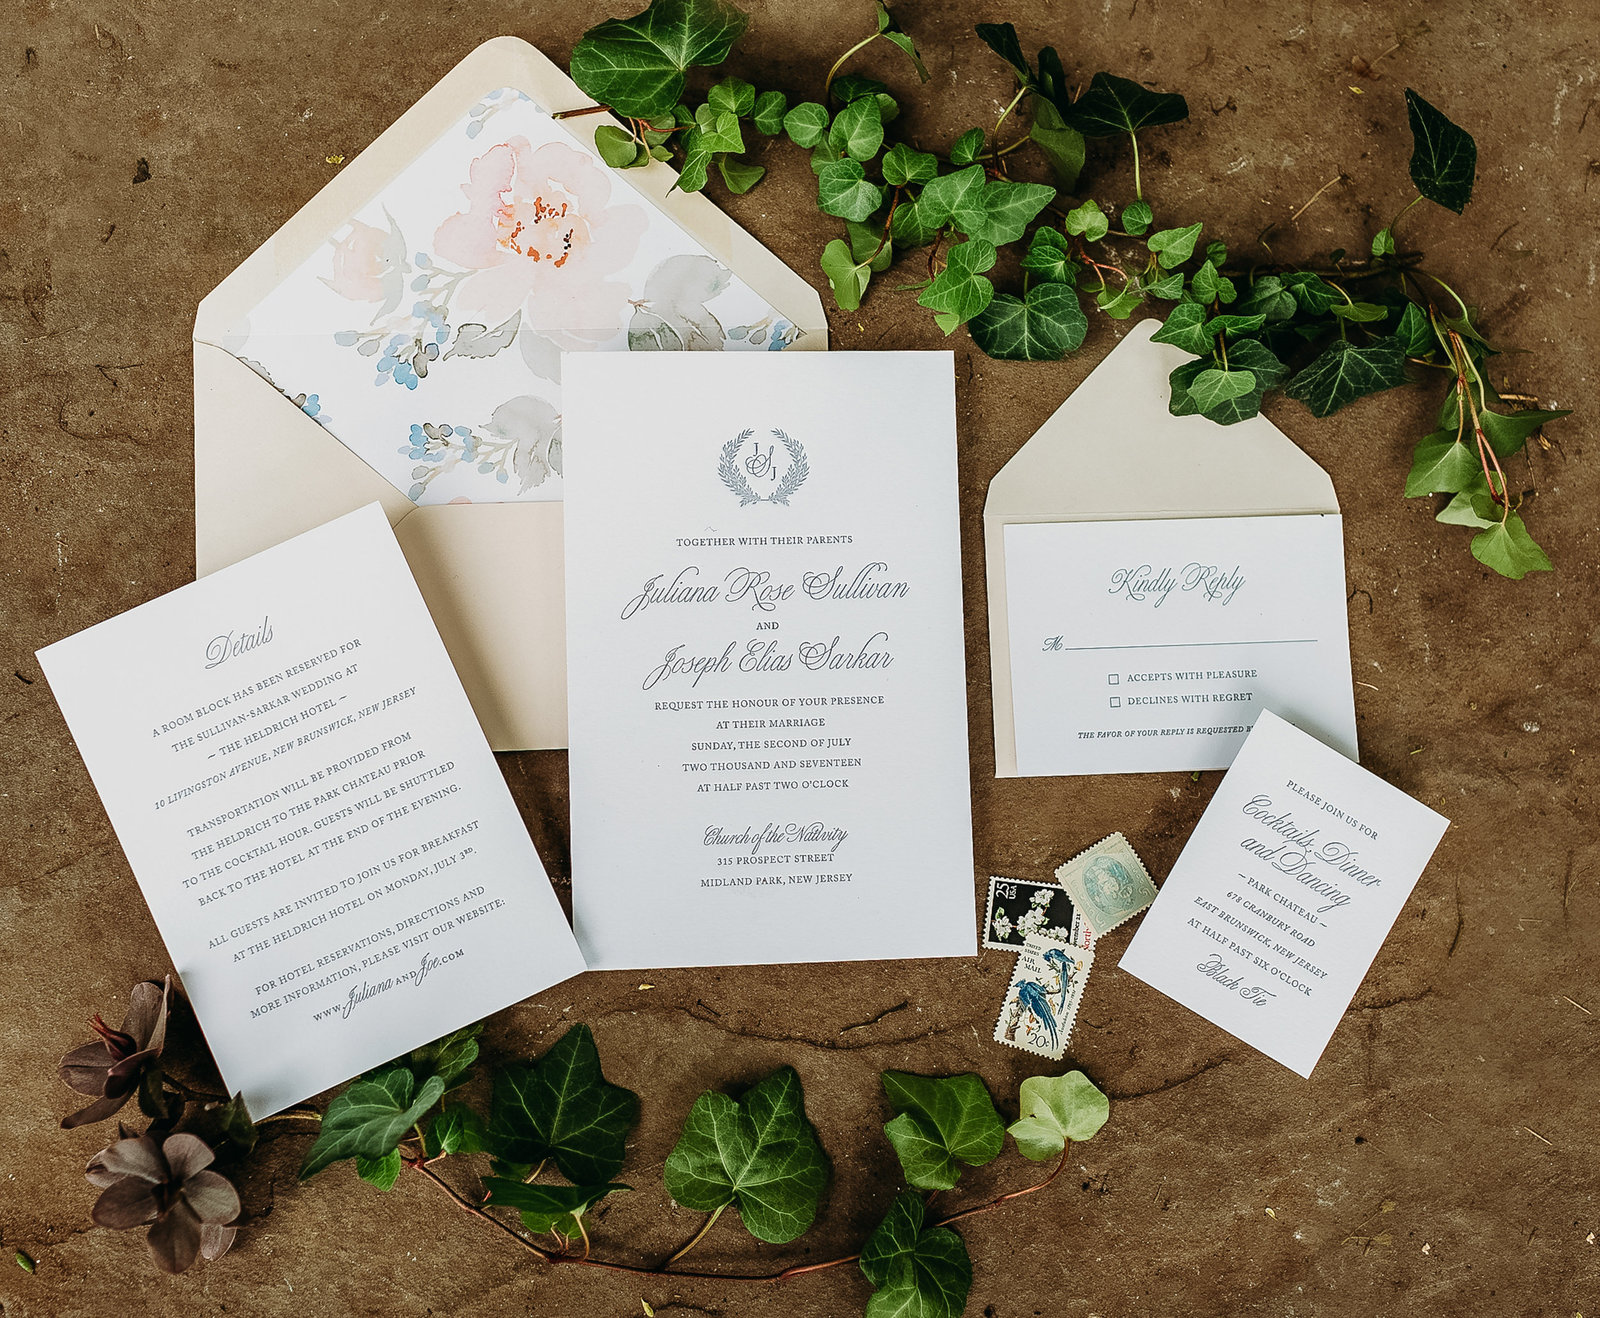 wedding invitation suite laid out with greenery